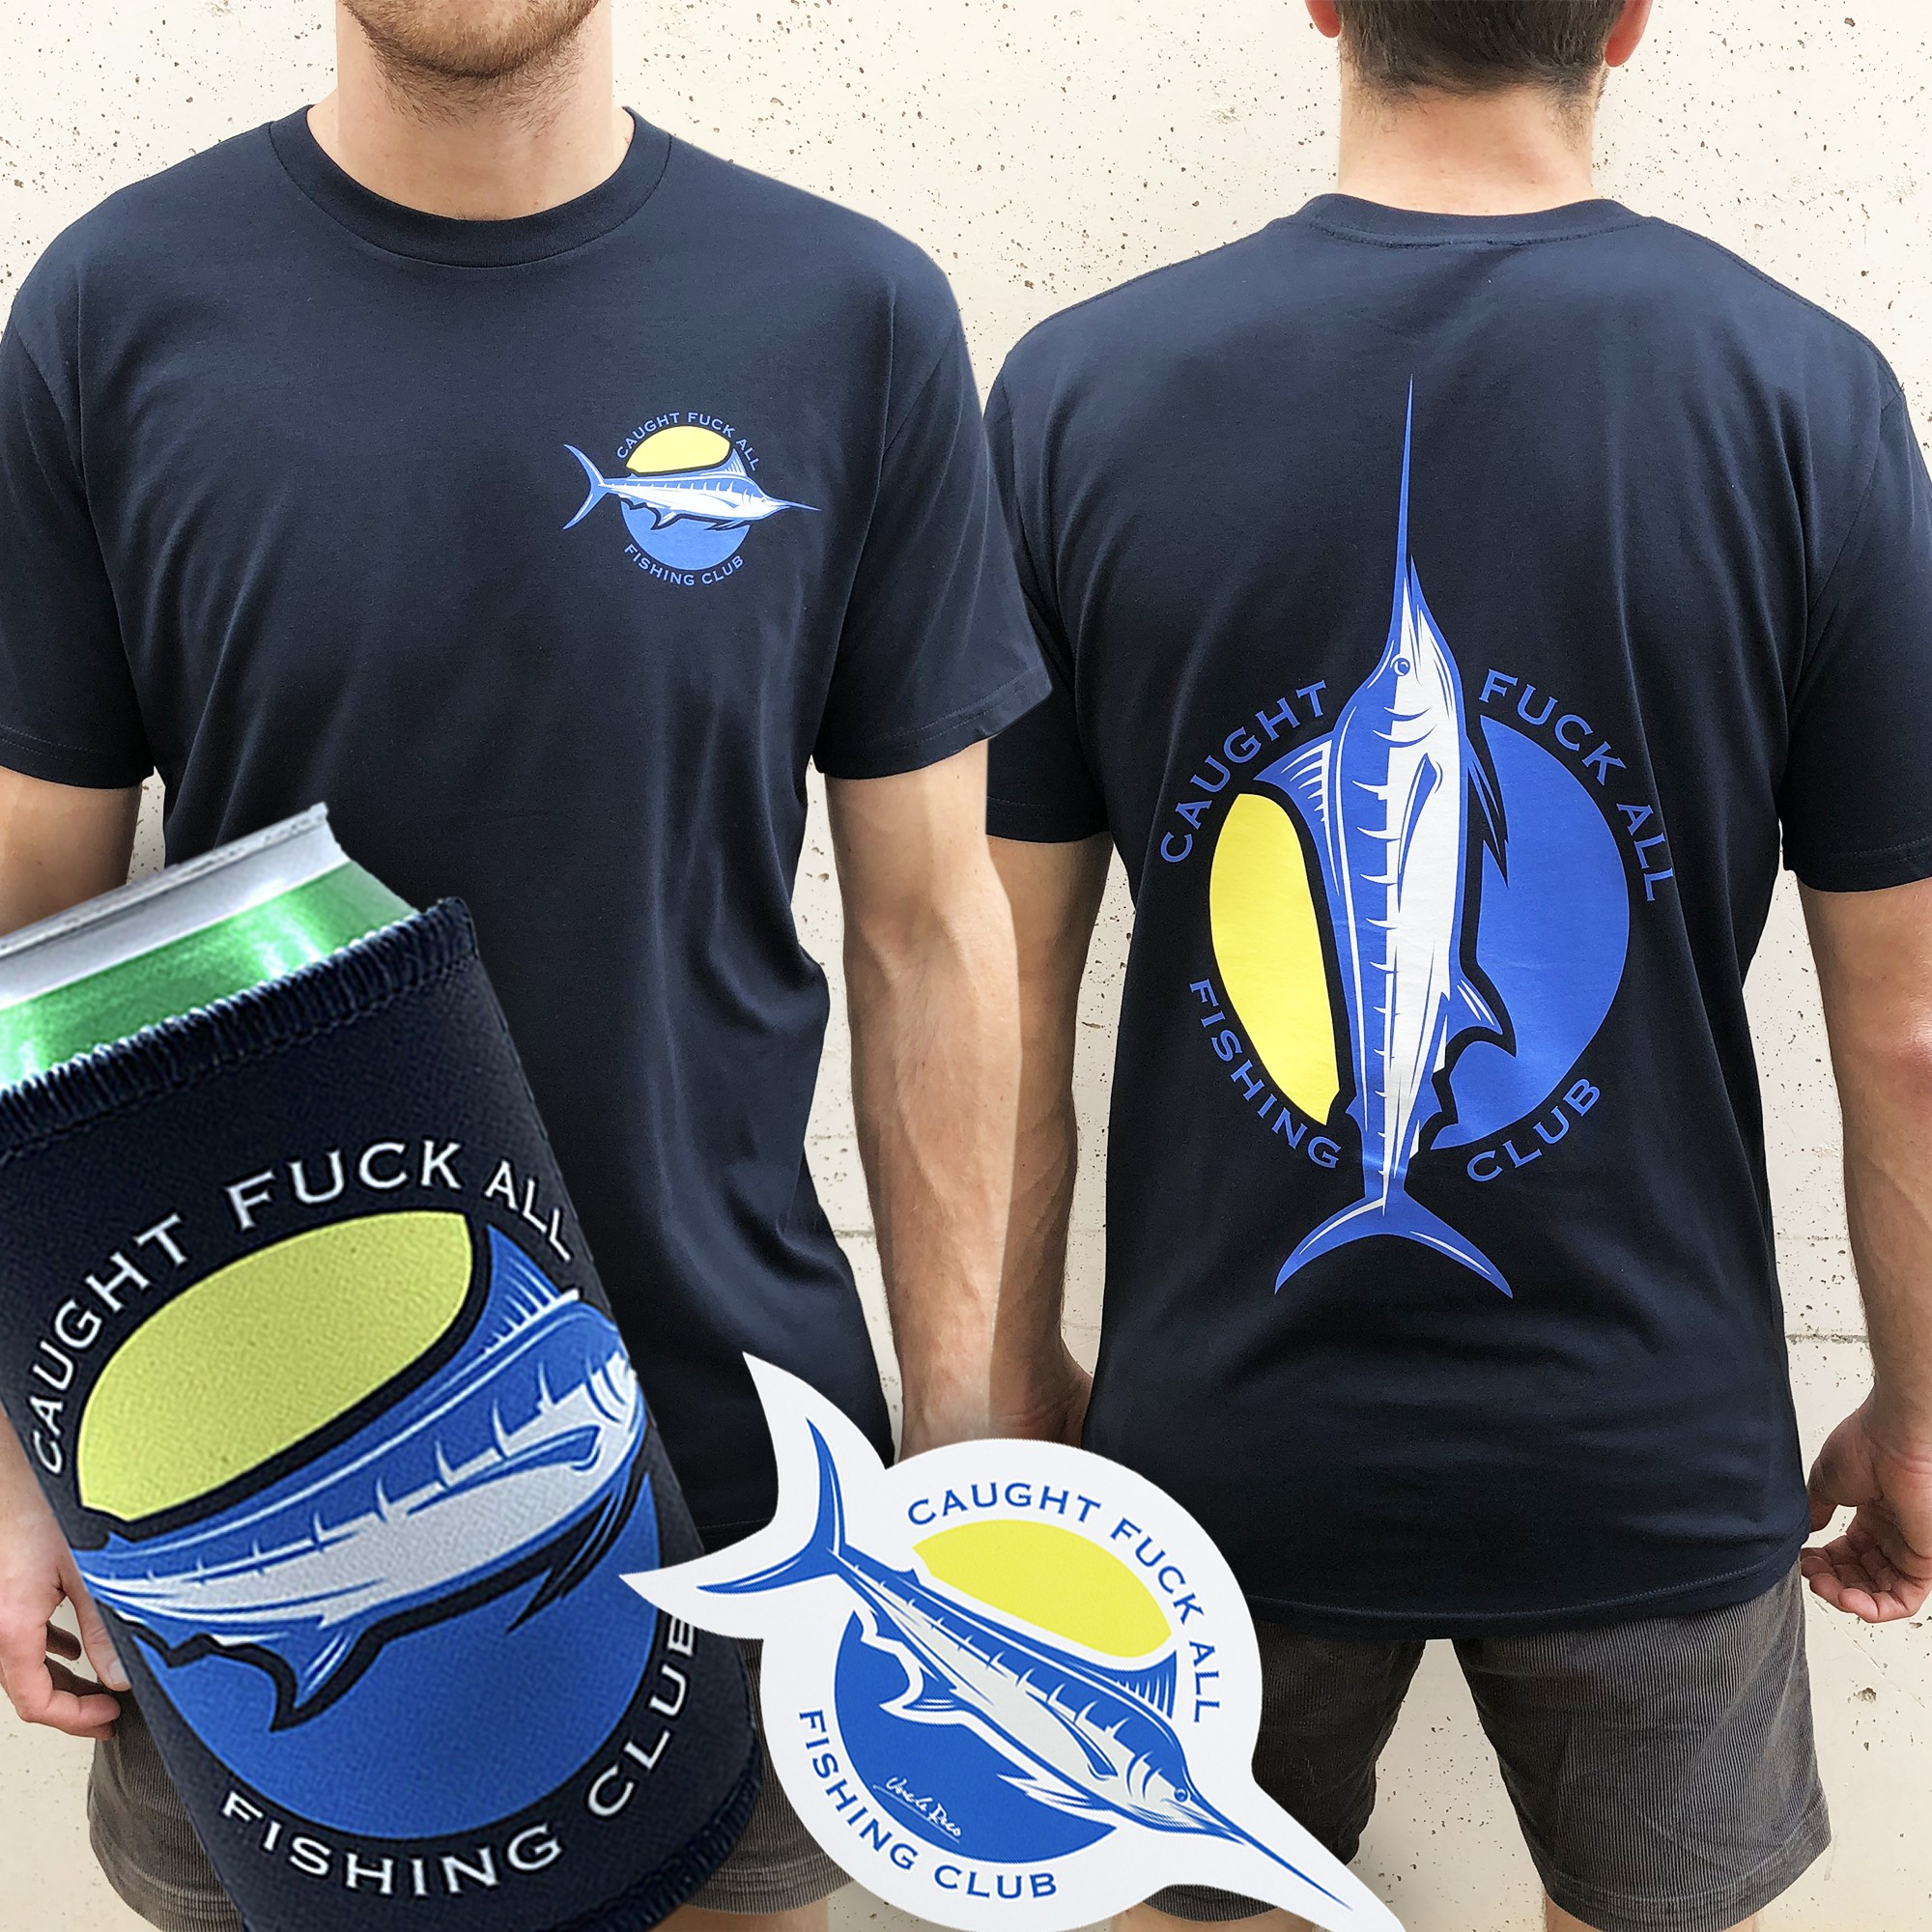 NAVY FISHING CLUB TEE + FREE STUBBY HOLDER AND STICKER